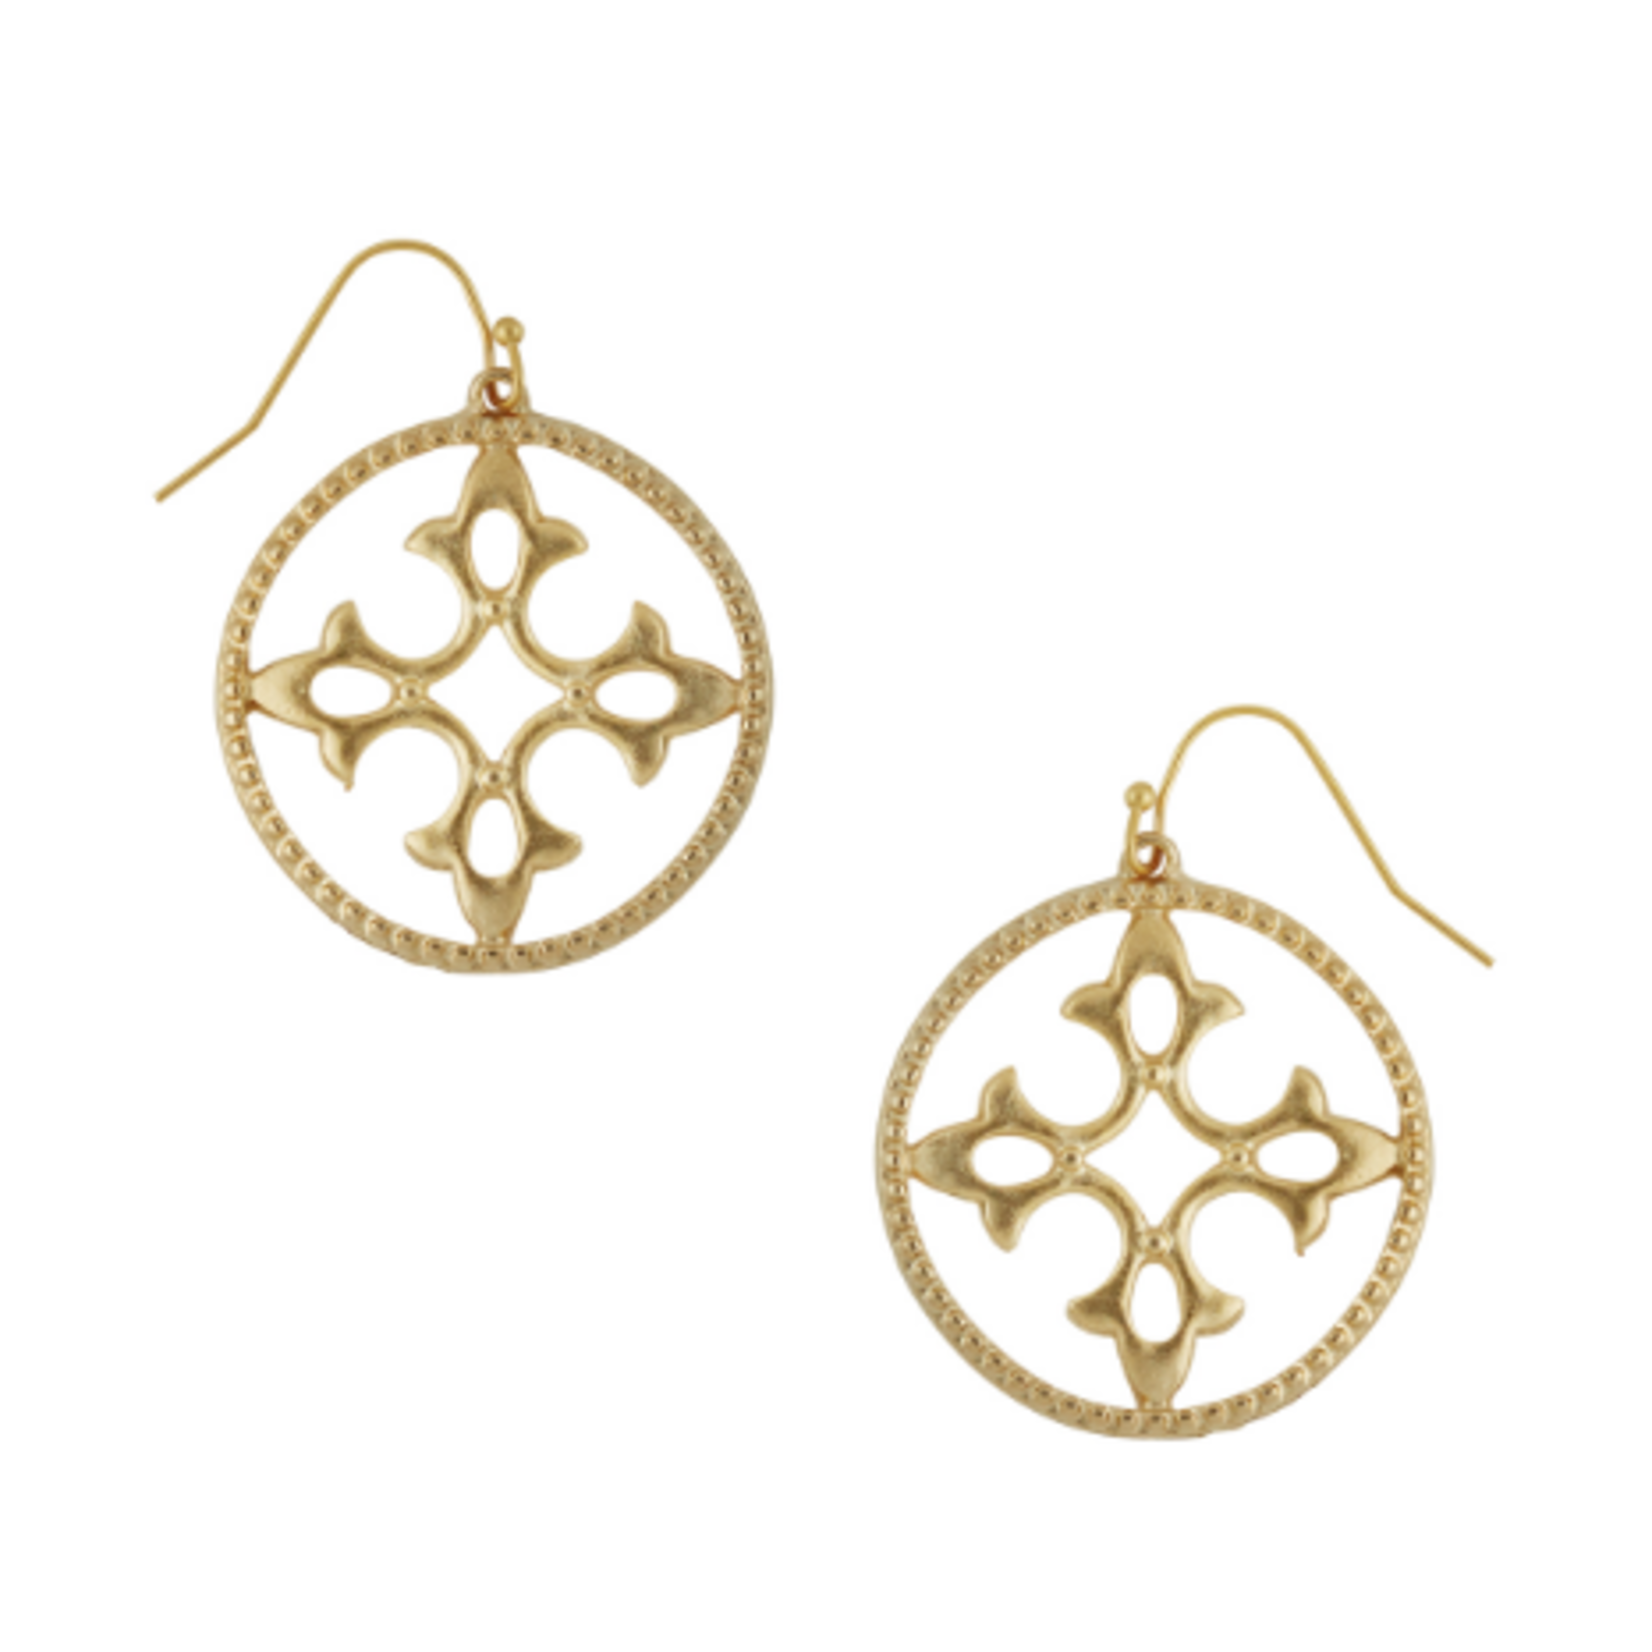 Susan Shaw Susan Shaw Gold Round Cut-Out Wire Earrings